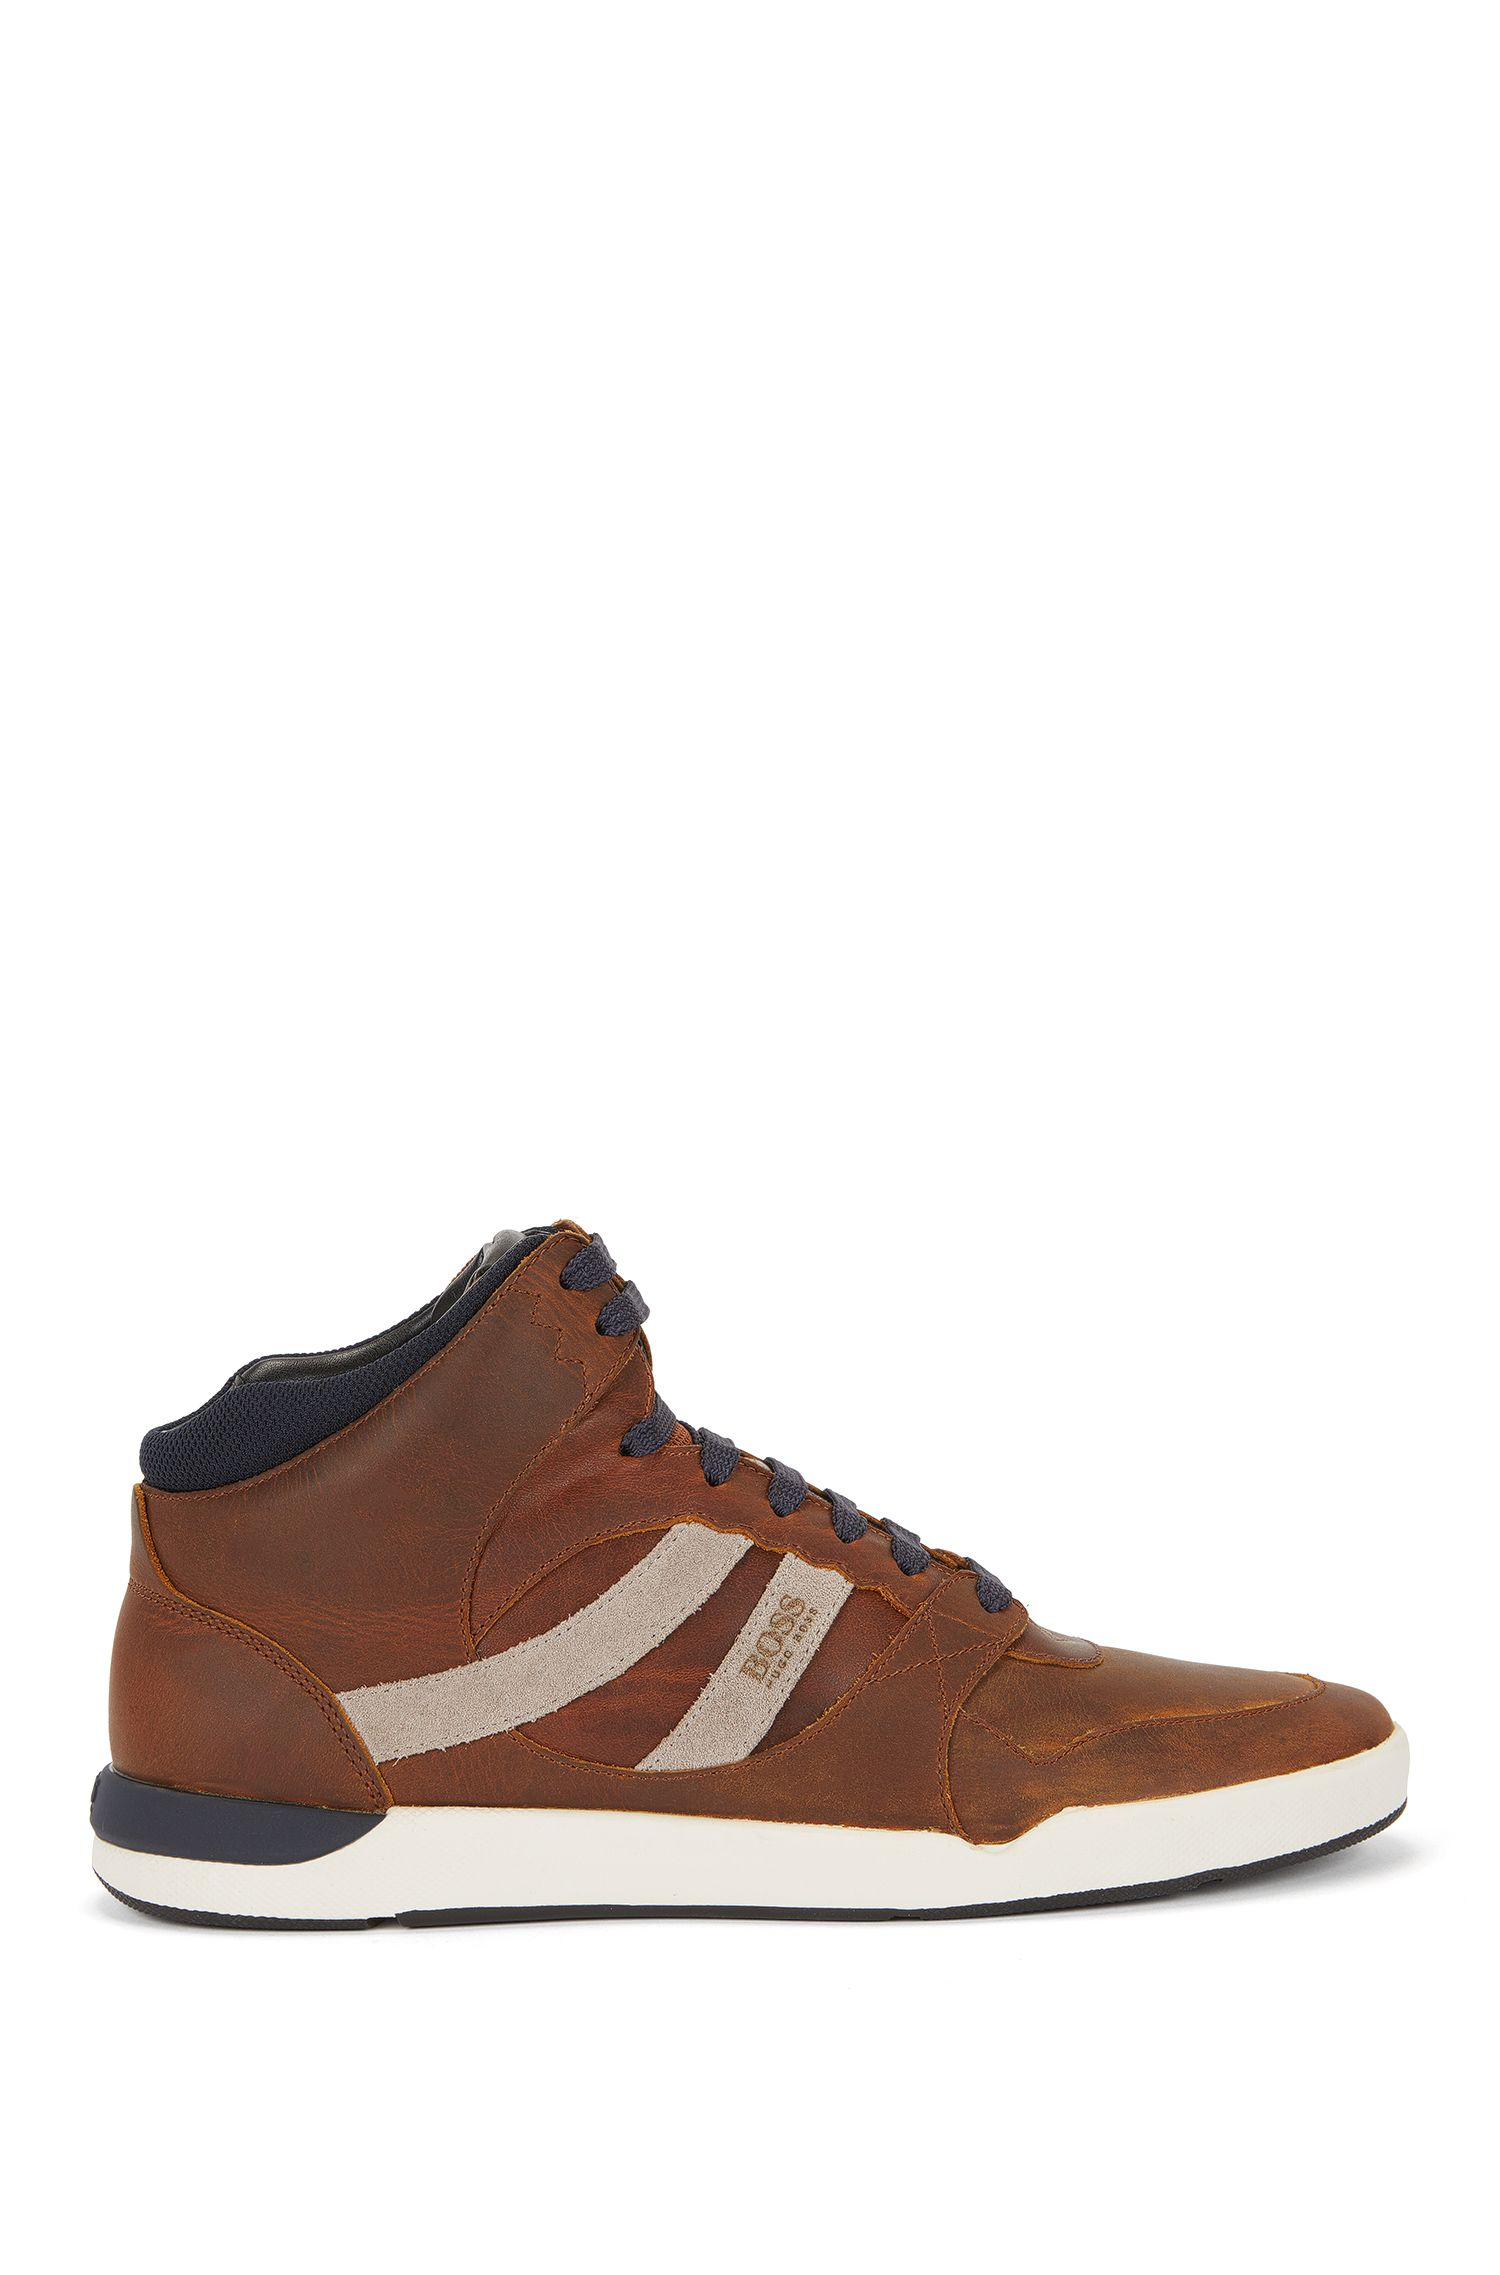 Leather High-Top Sneaker | Stillnes Hito Pp